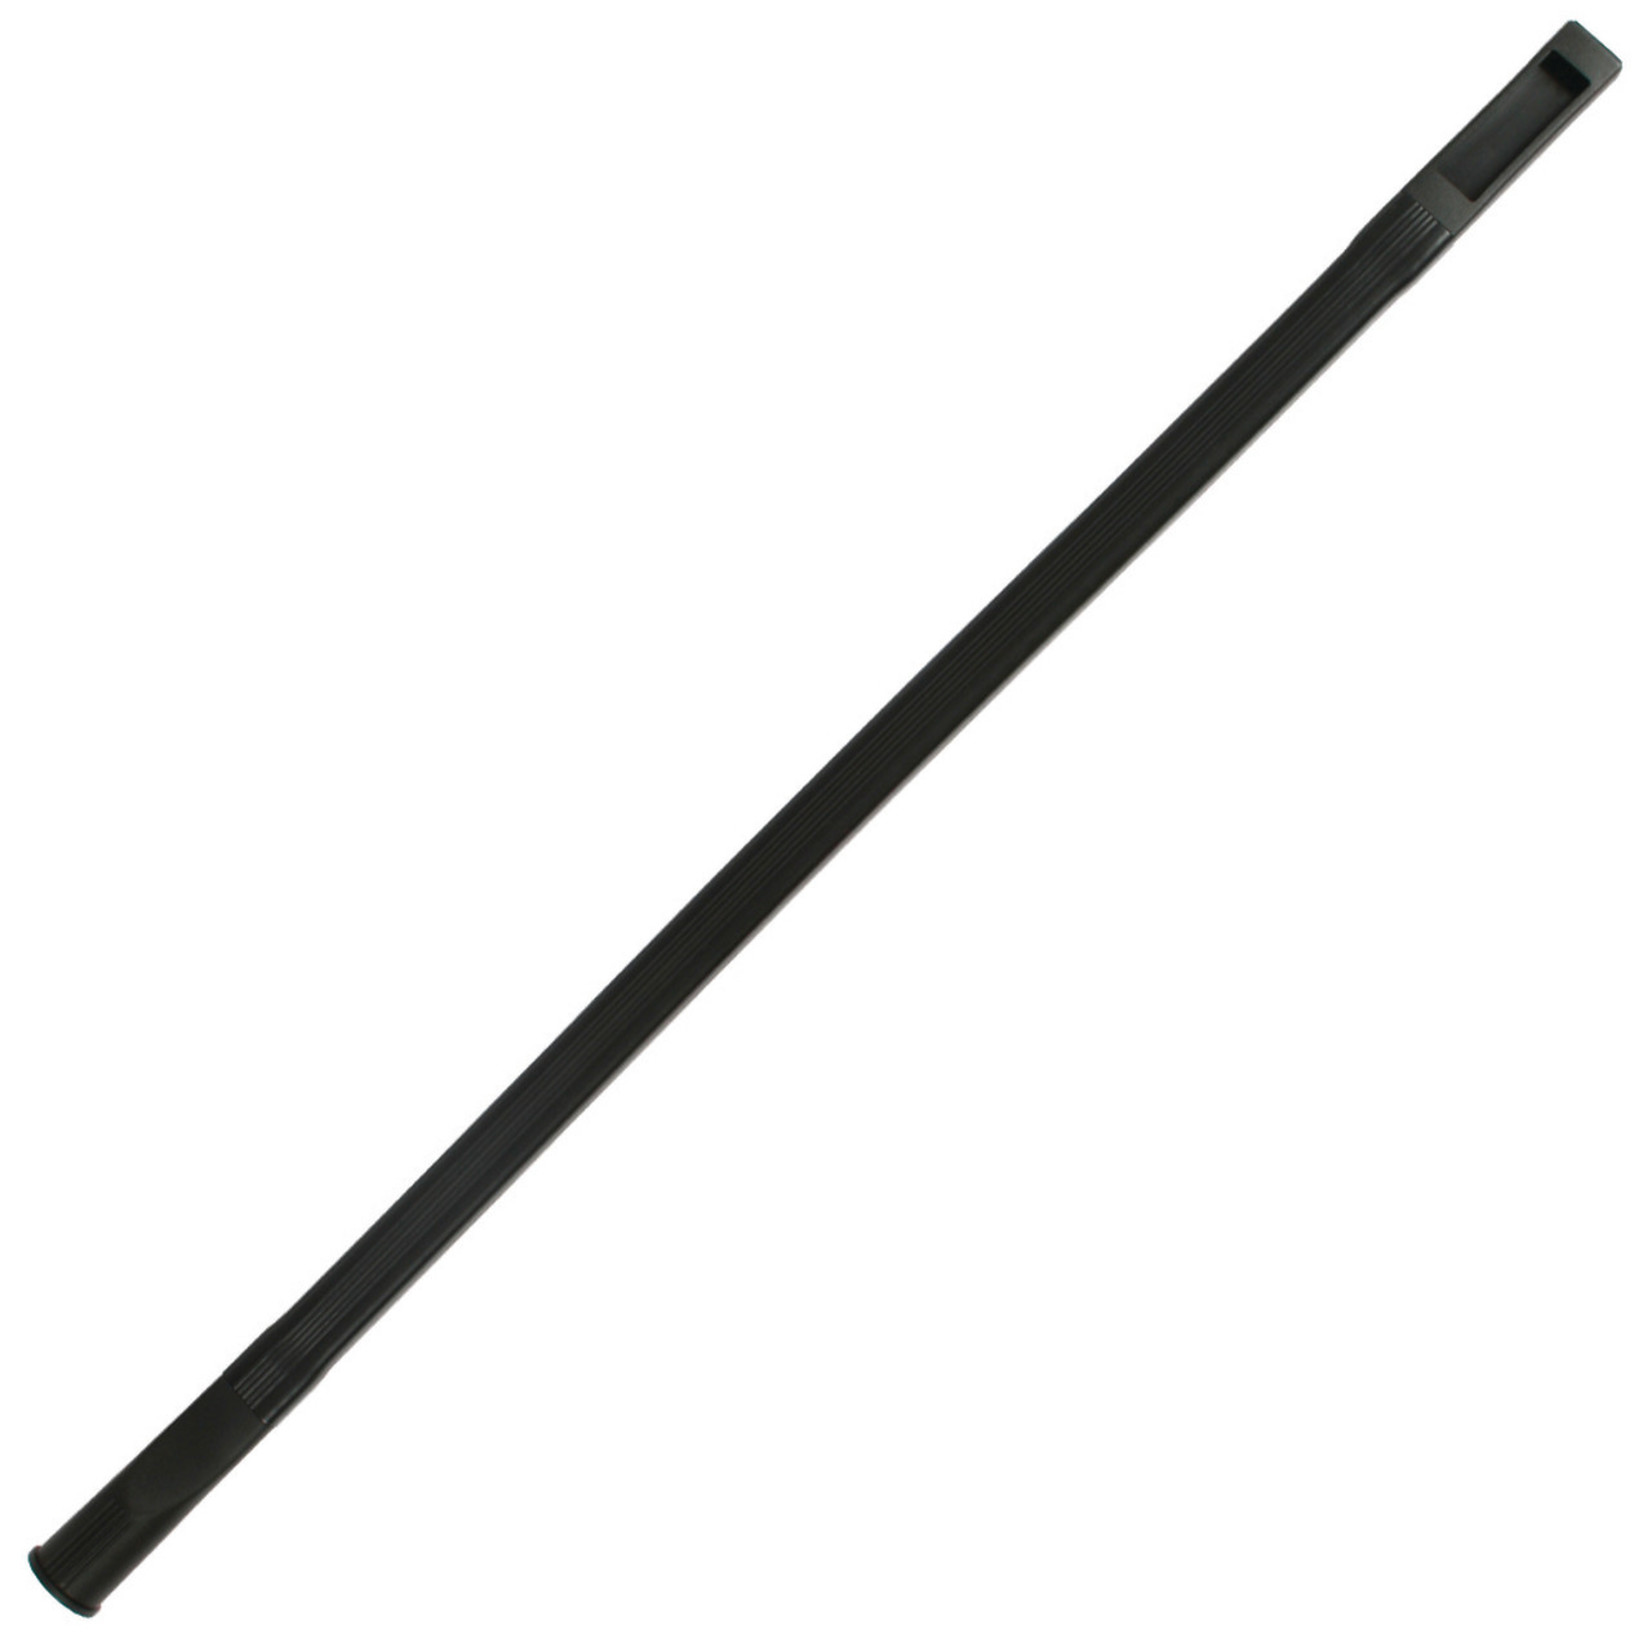 """Centec CenTec Rubber Crevice Tool 1-1/4"""" X 24"""" - RETAIL PACKED"""